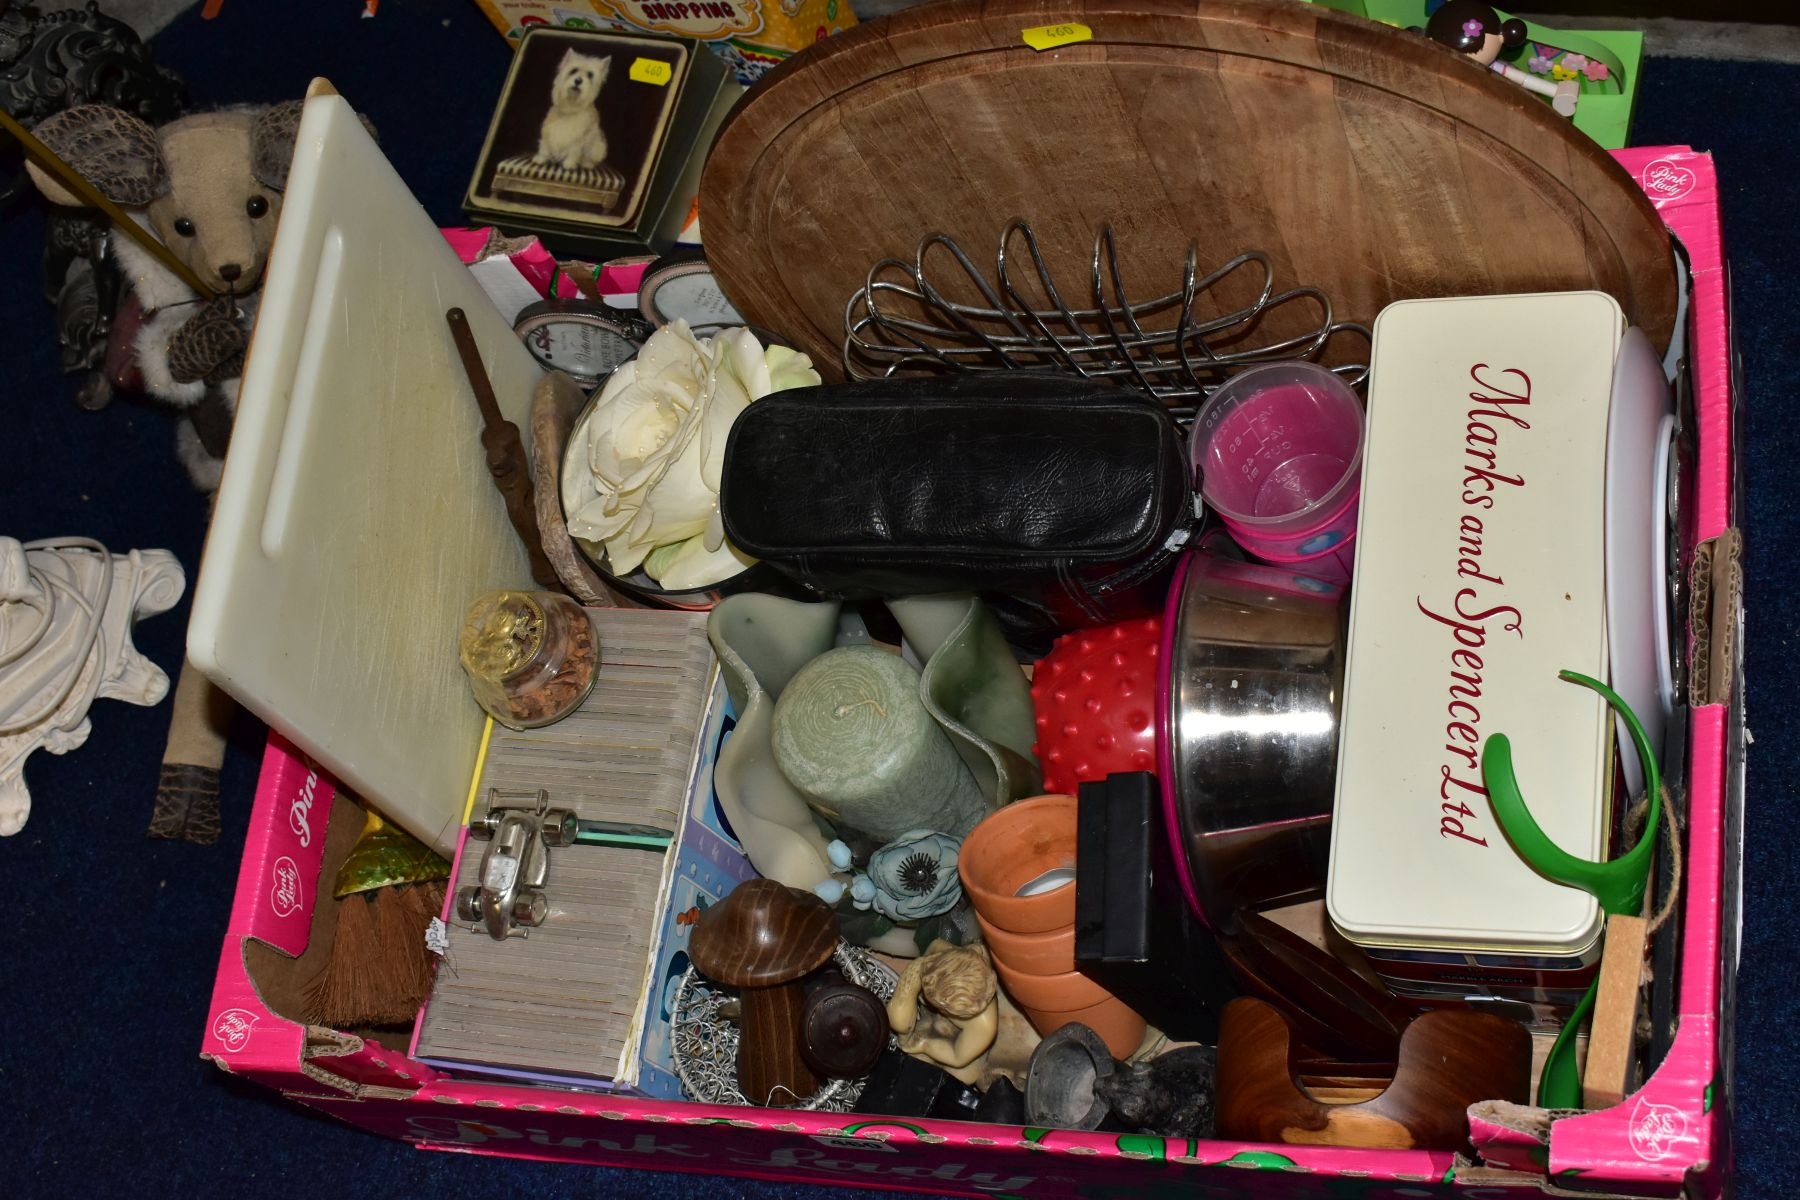 FOUR BOXES AND LOOSE METALWARE, HOUSEHOLD SUNDRIES, OIL LAMP, etc, to include board games, book - Image 2 of 16